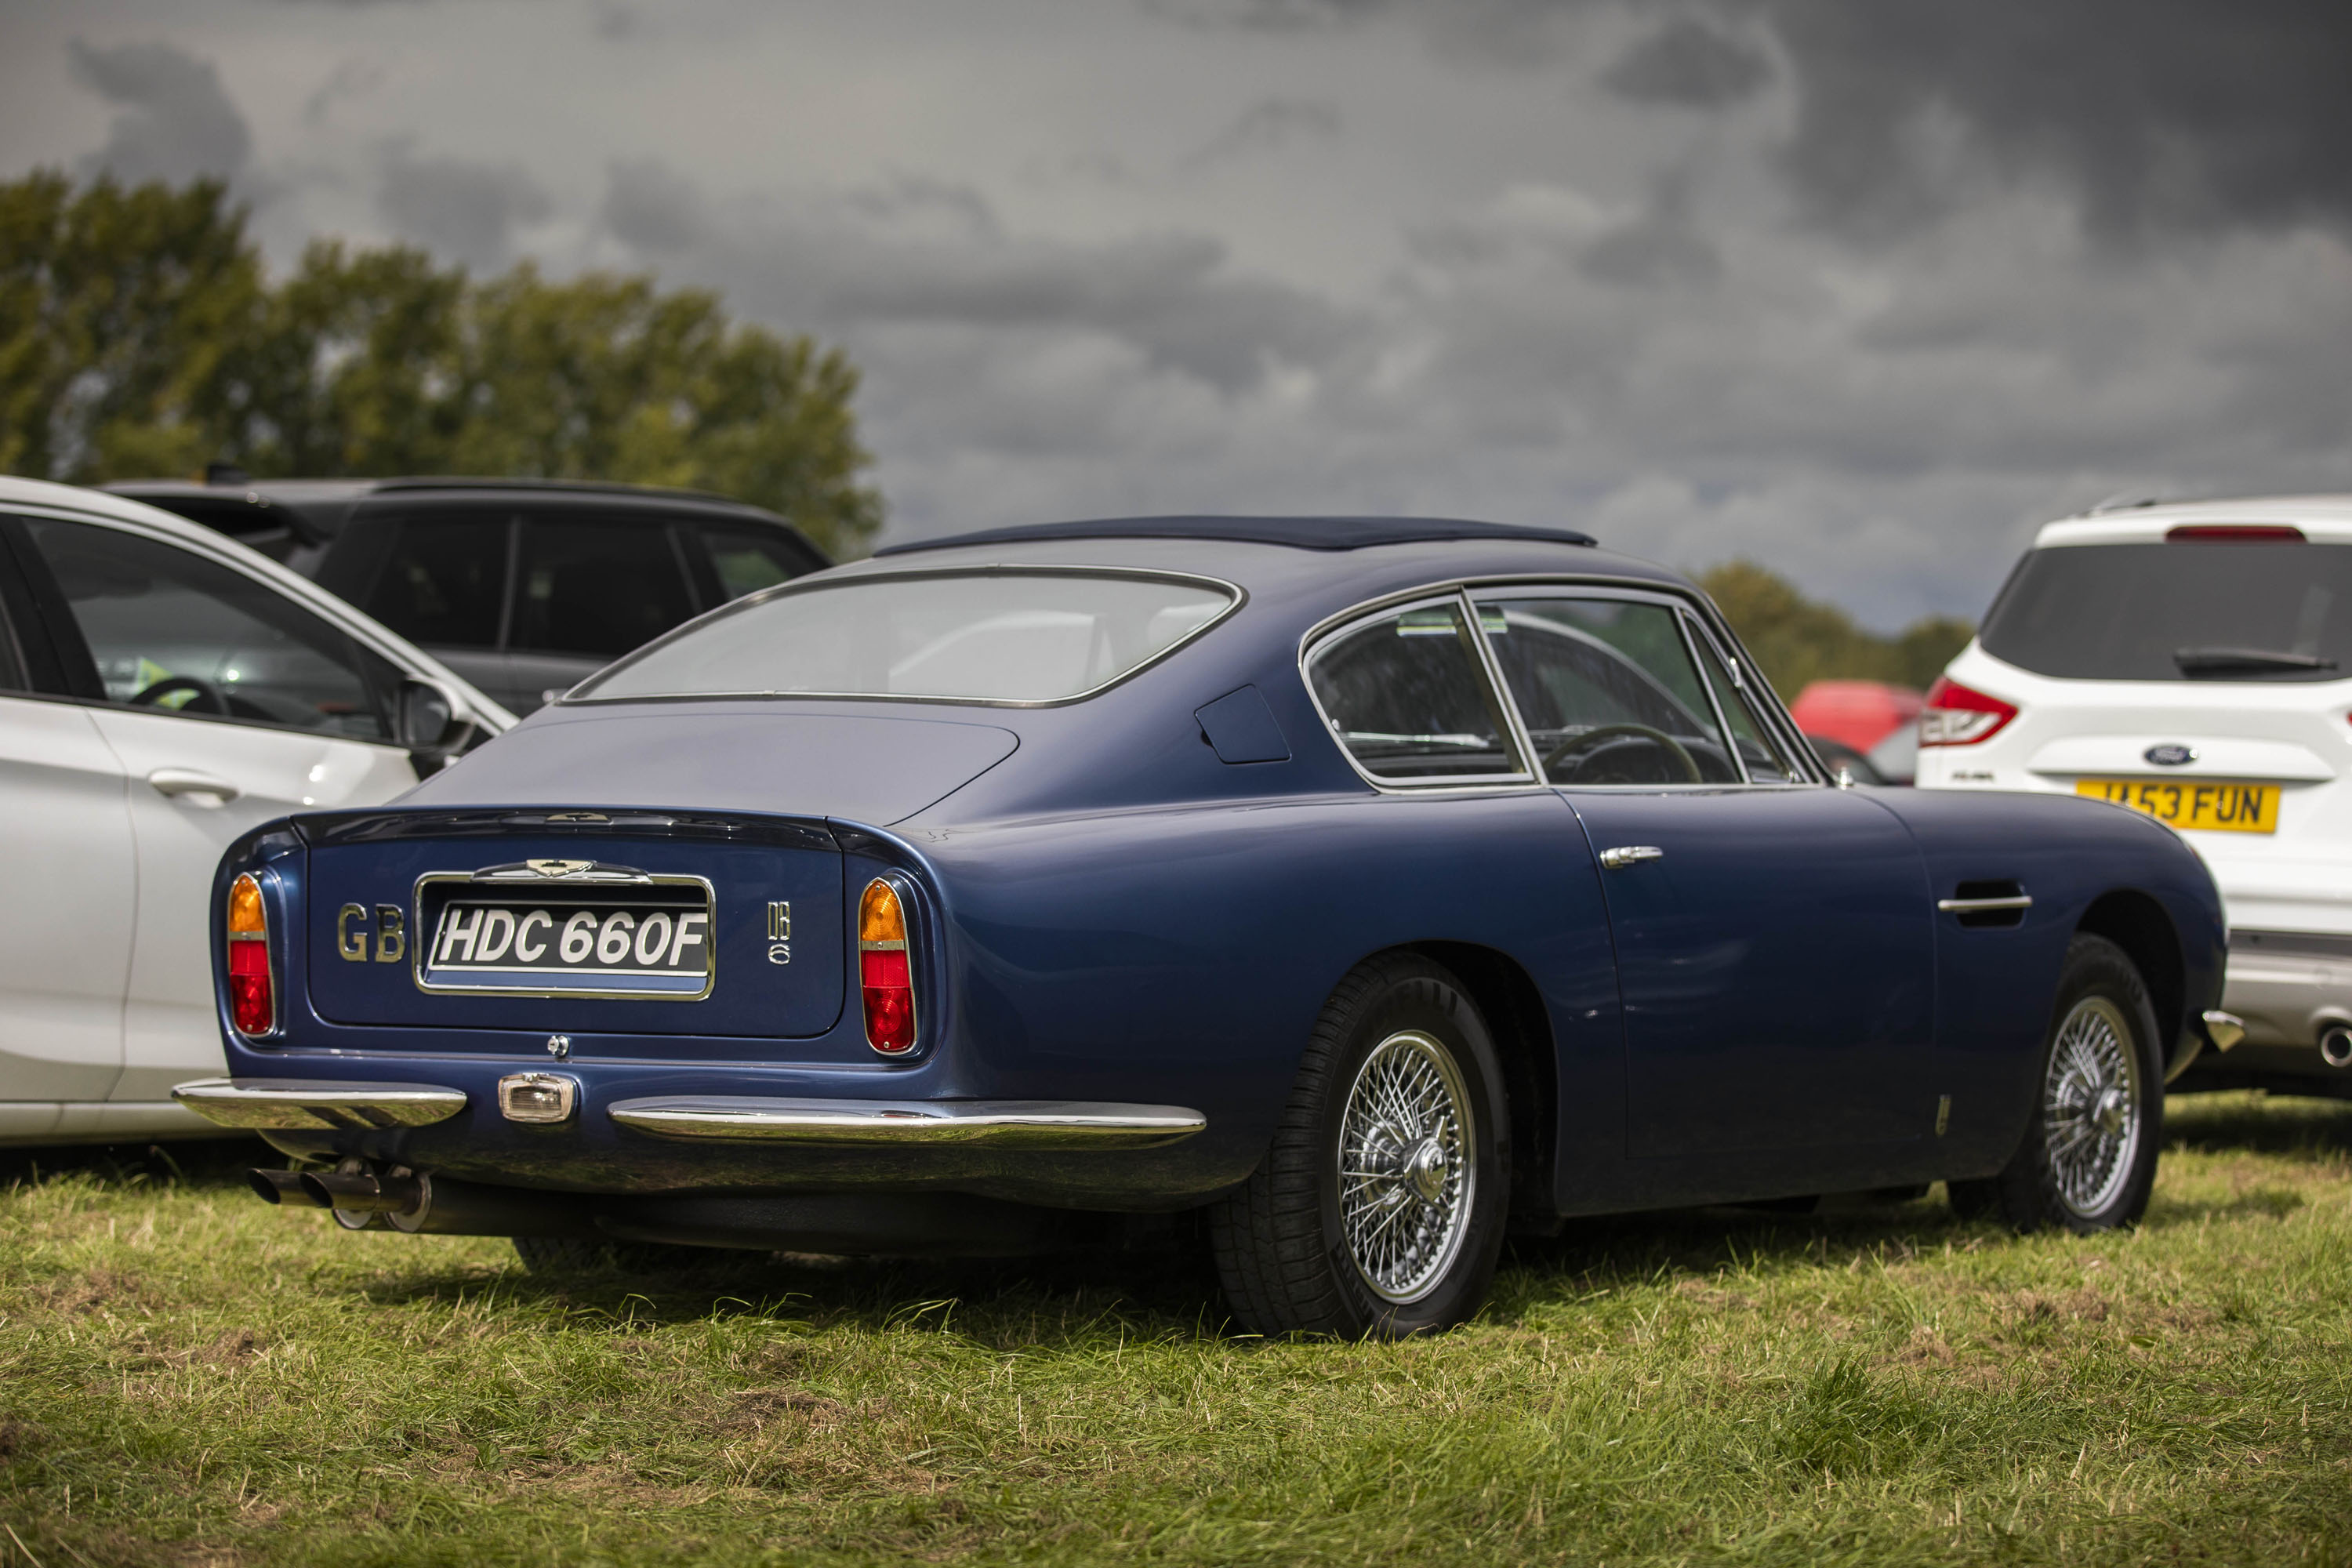 Aston Martin DB6 rear 3/4